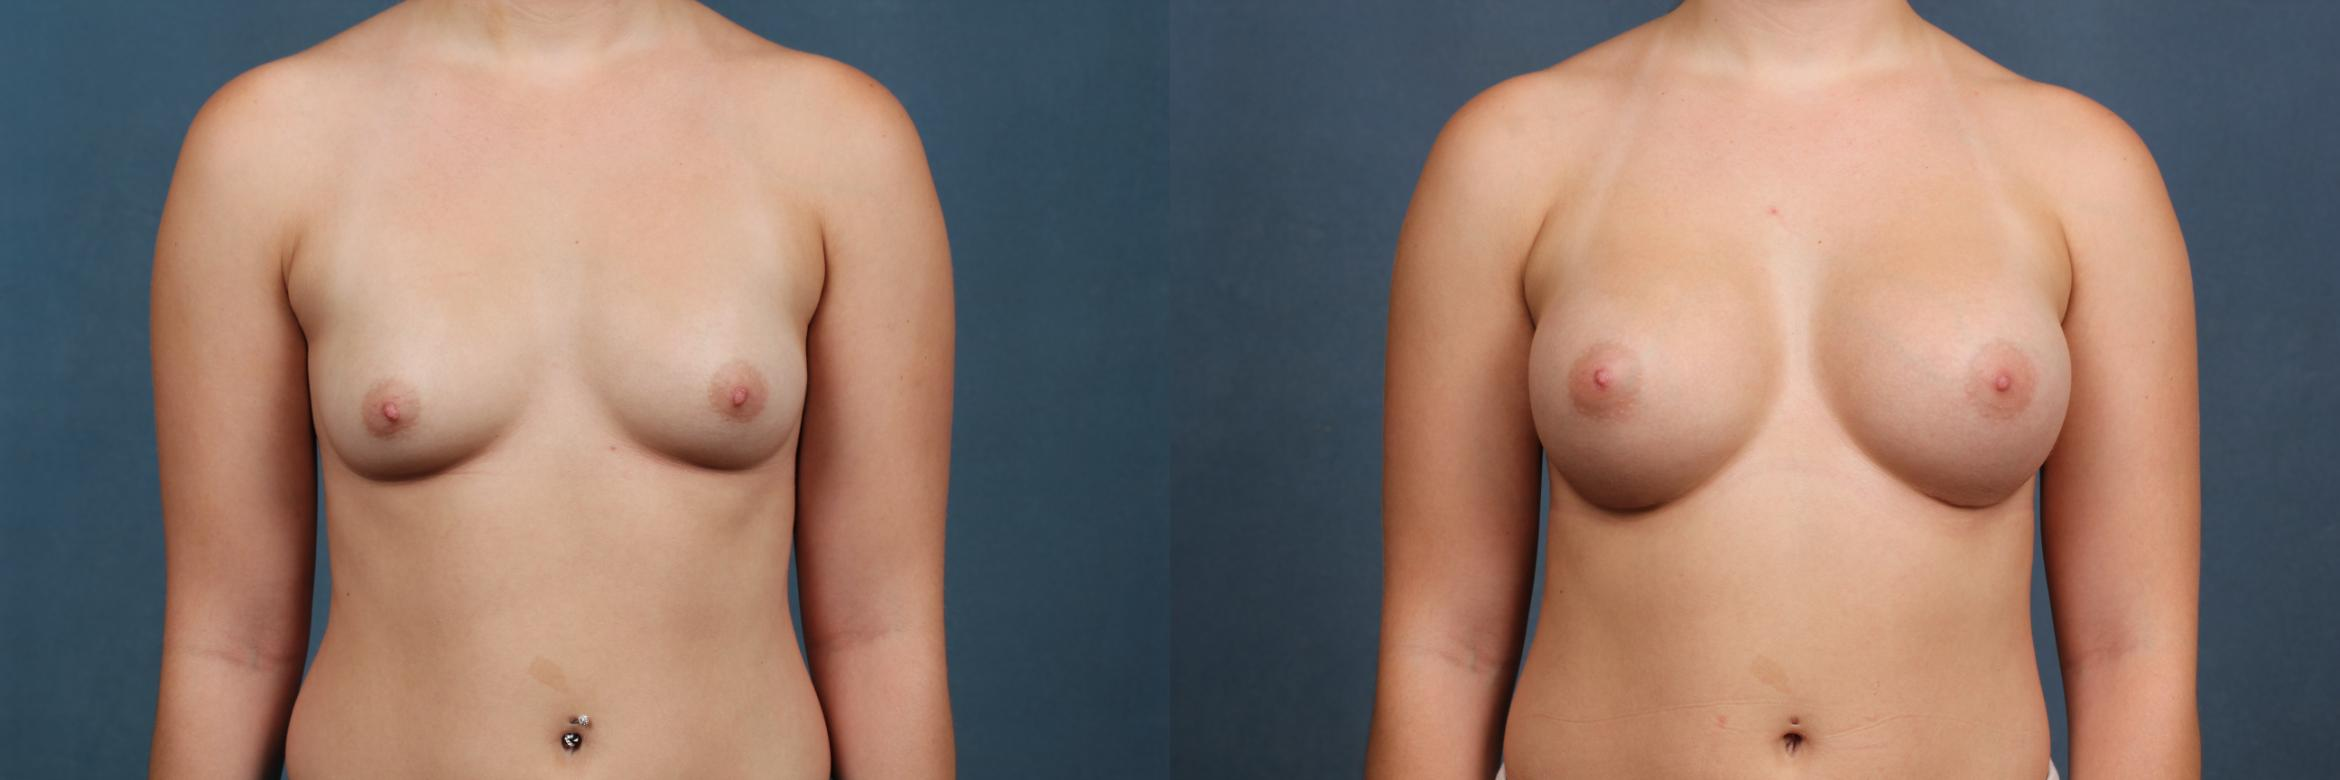 Enlargement - Silicone Case 352 Before & After View #1 | Louisville, KY | CaloAesthetics® Plastic Surgery Center